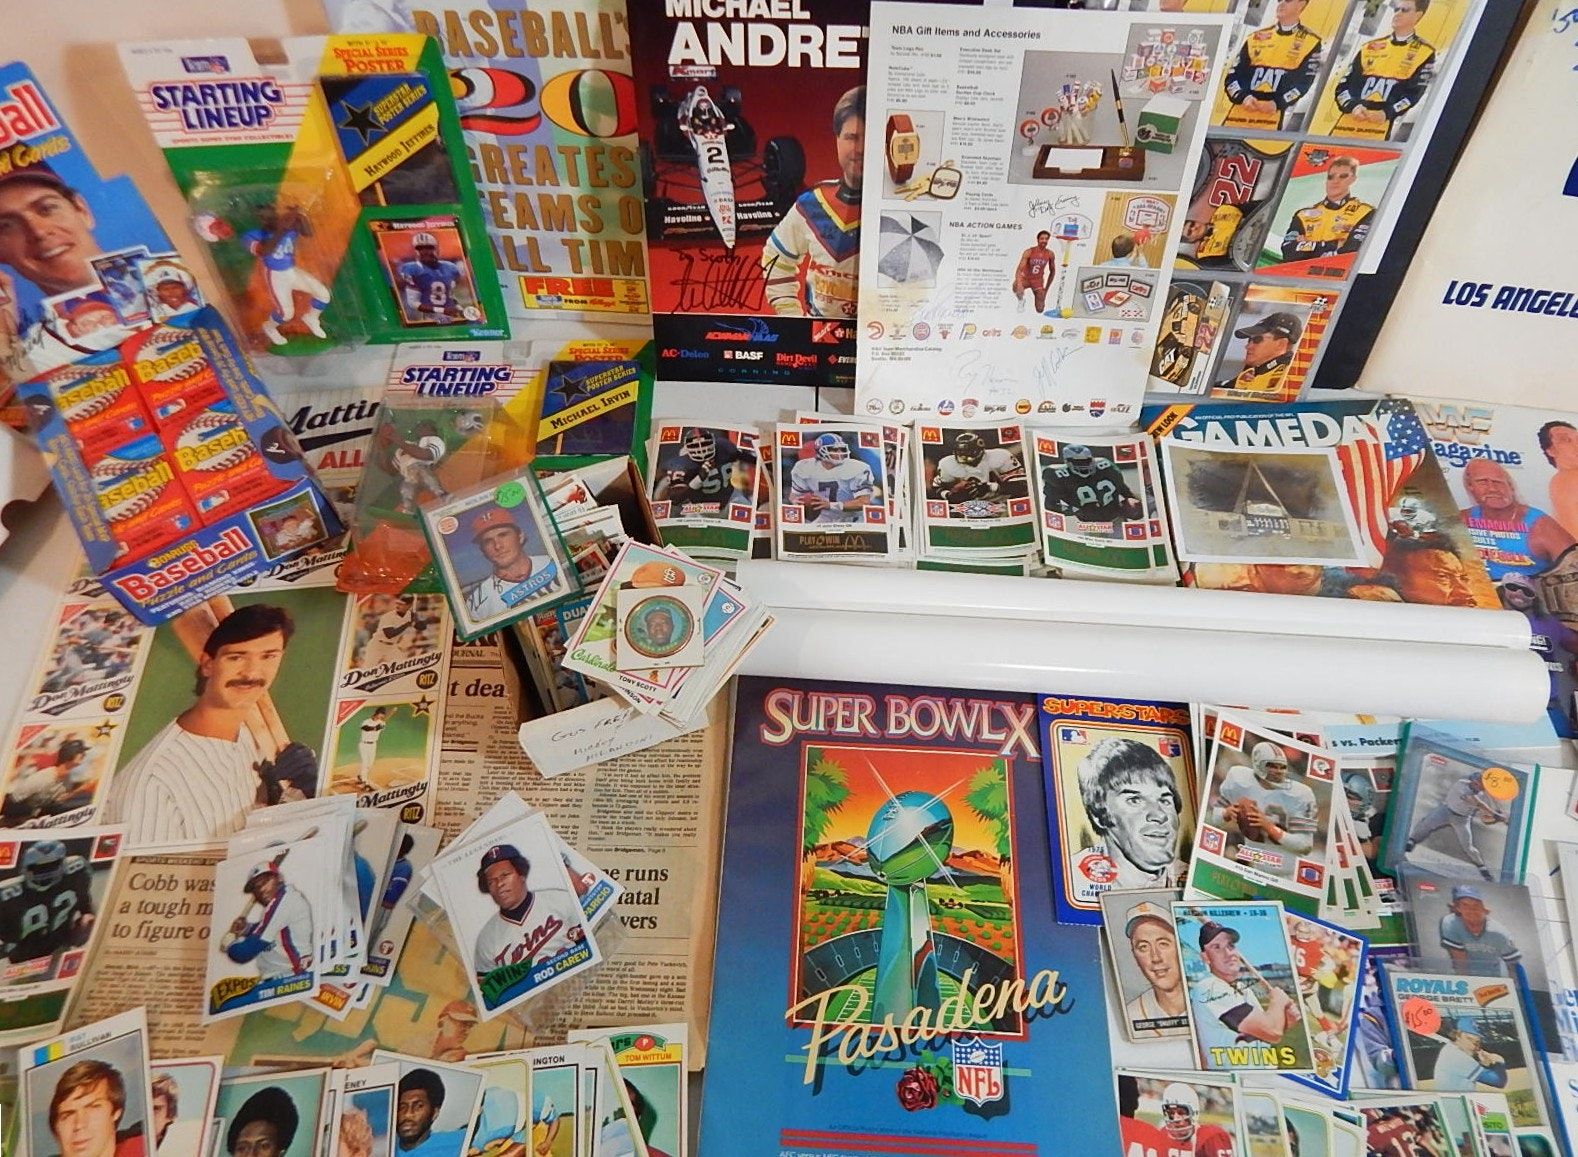 Sports Card and Memorabilia Collection with Stars, HOF, Signed Magazine